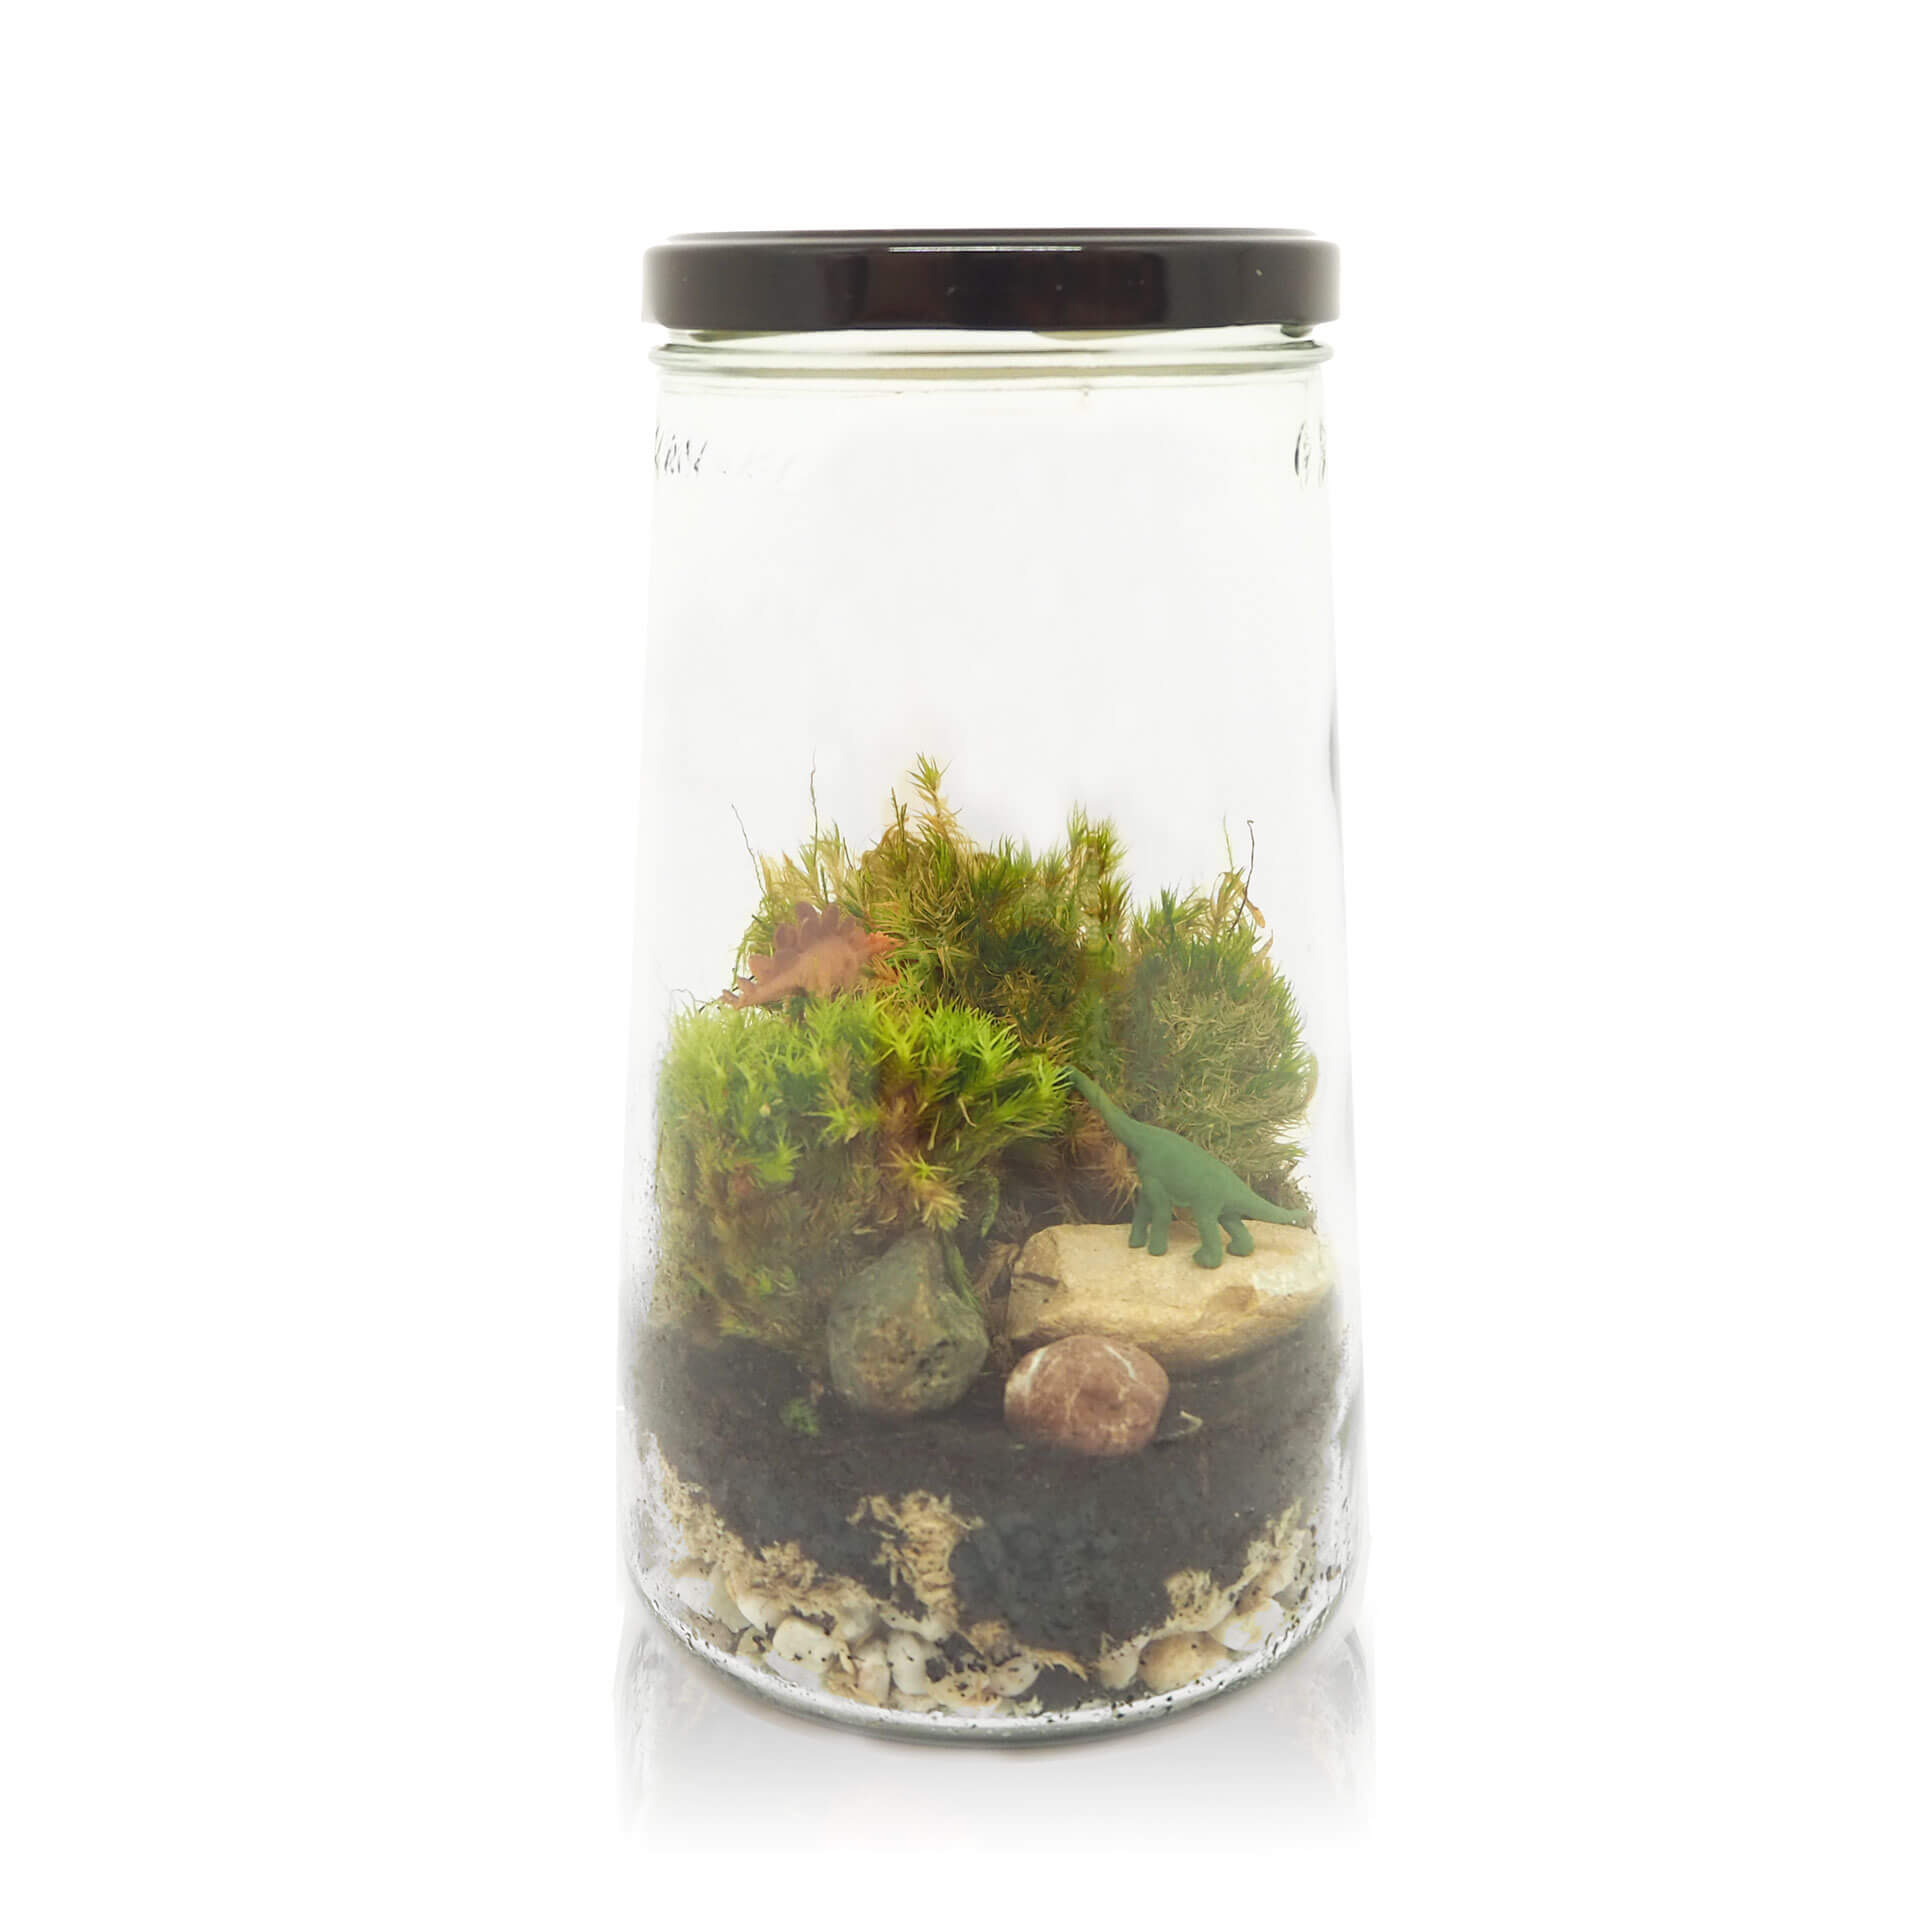 koop-ecosysteem-in-een-pot-inspickle-dino-medium-pot